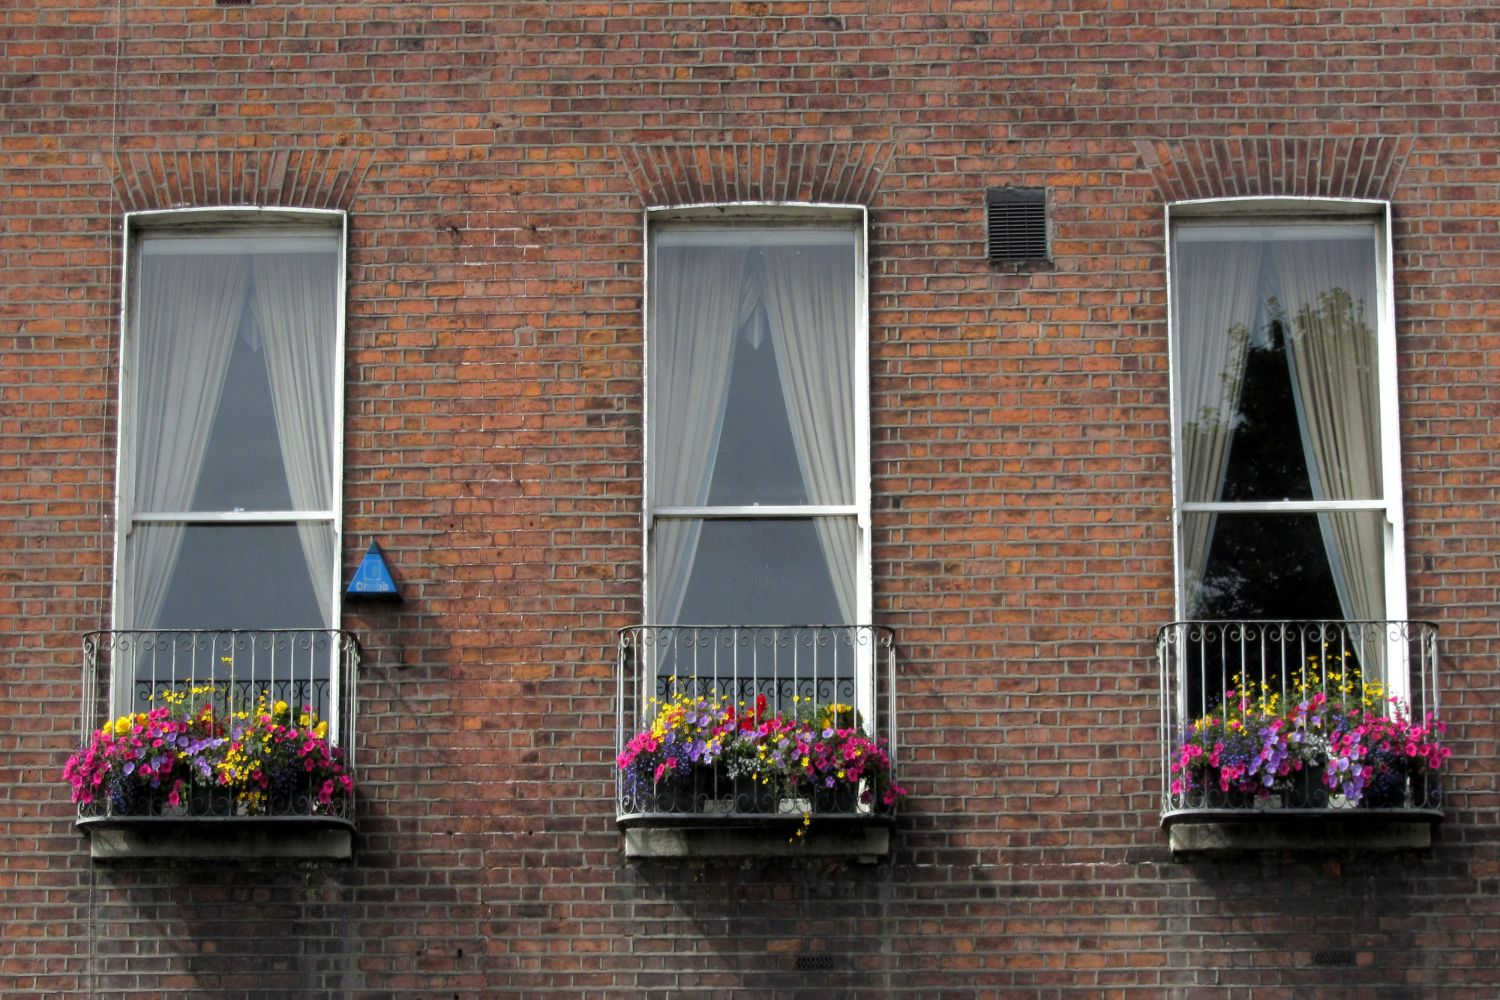 townhouse windows, Parnell Sq